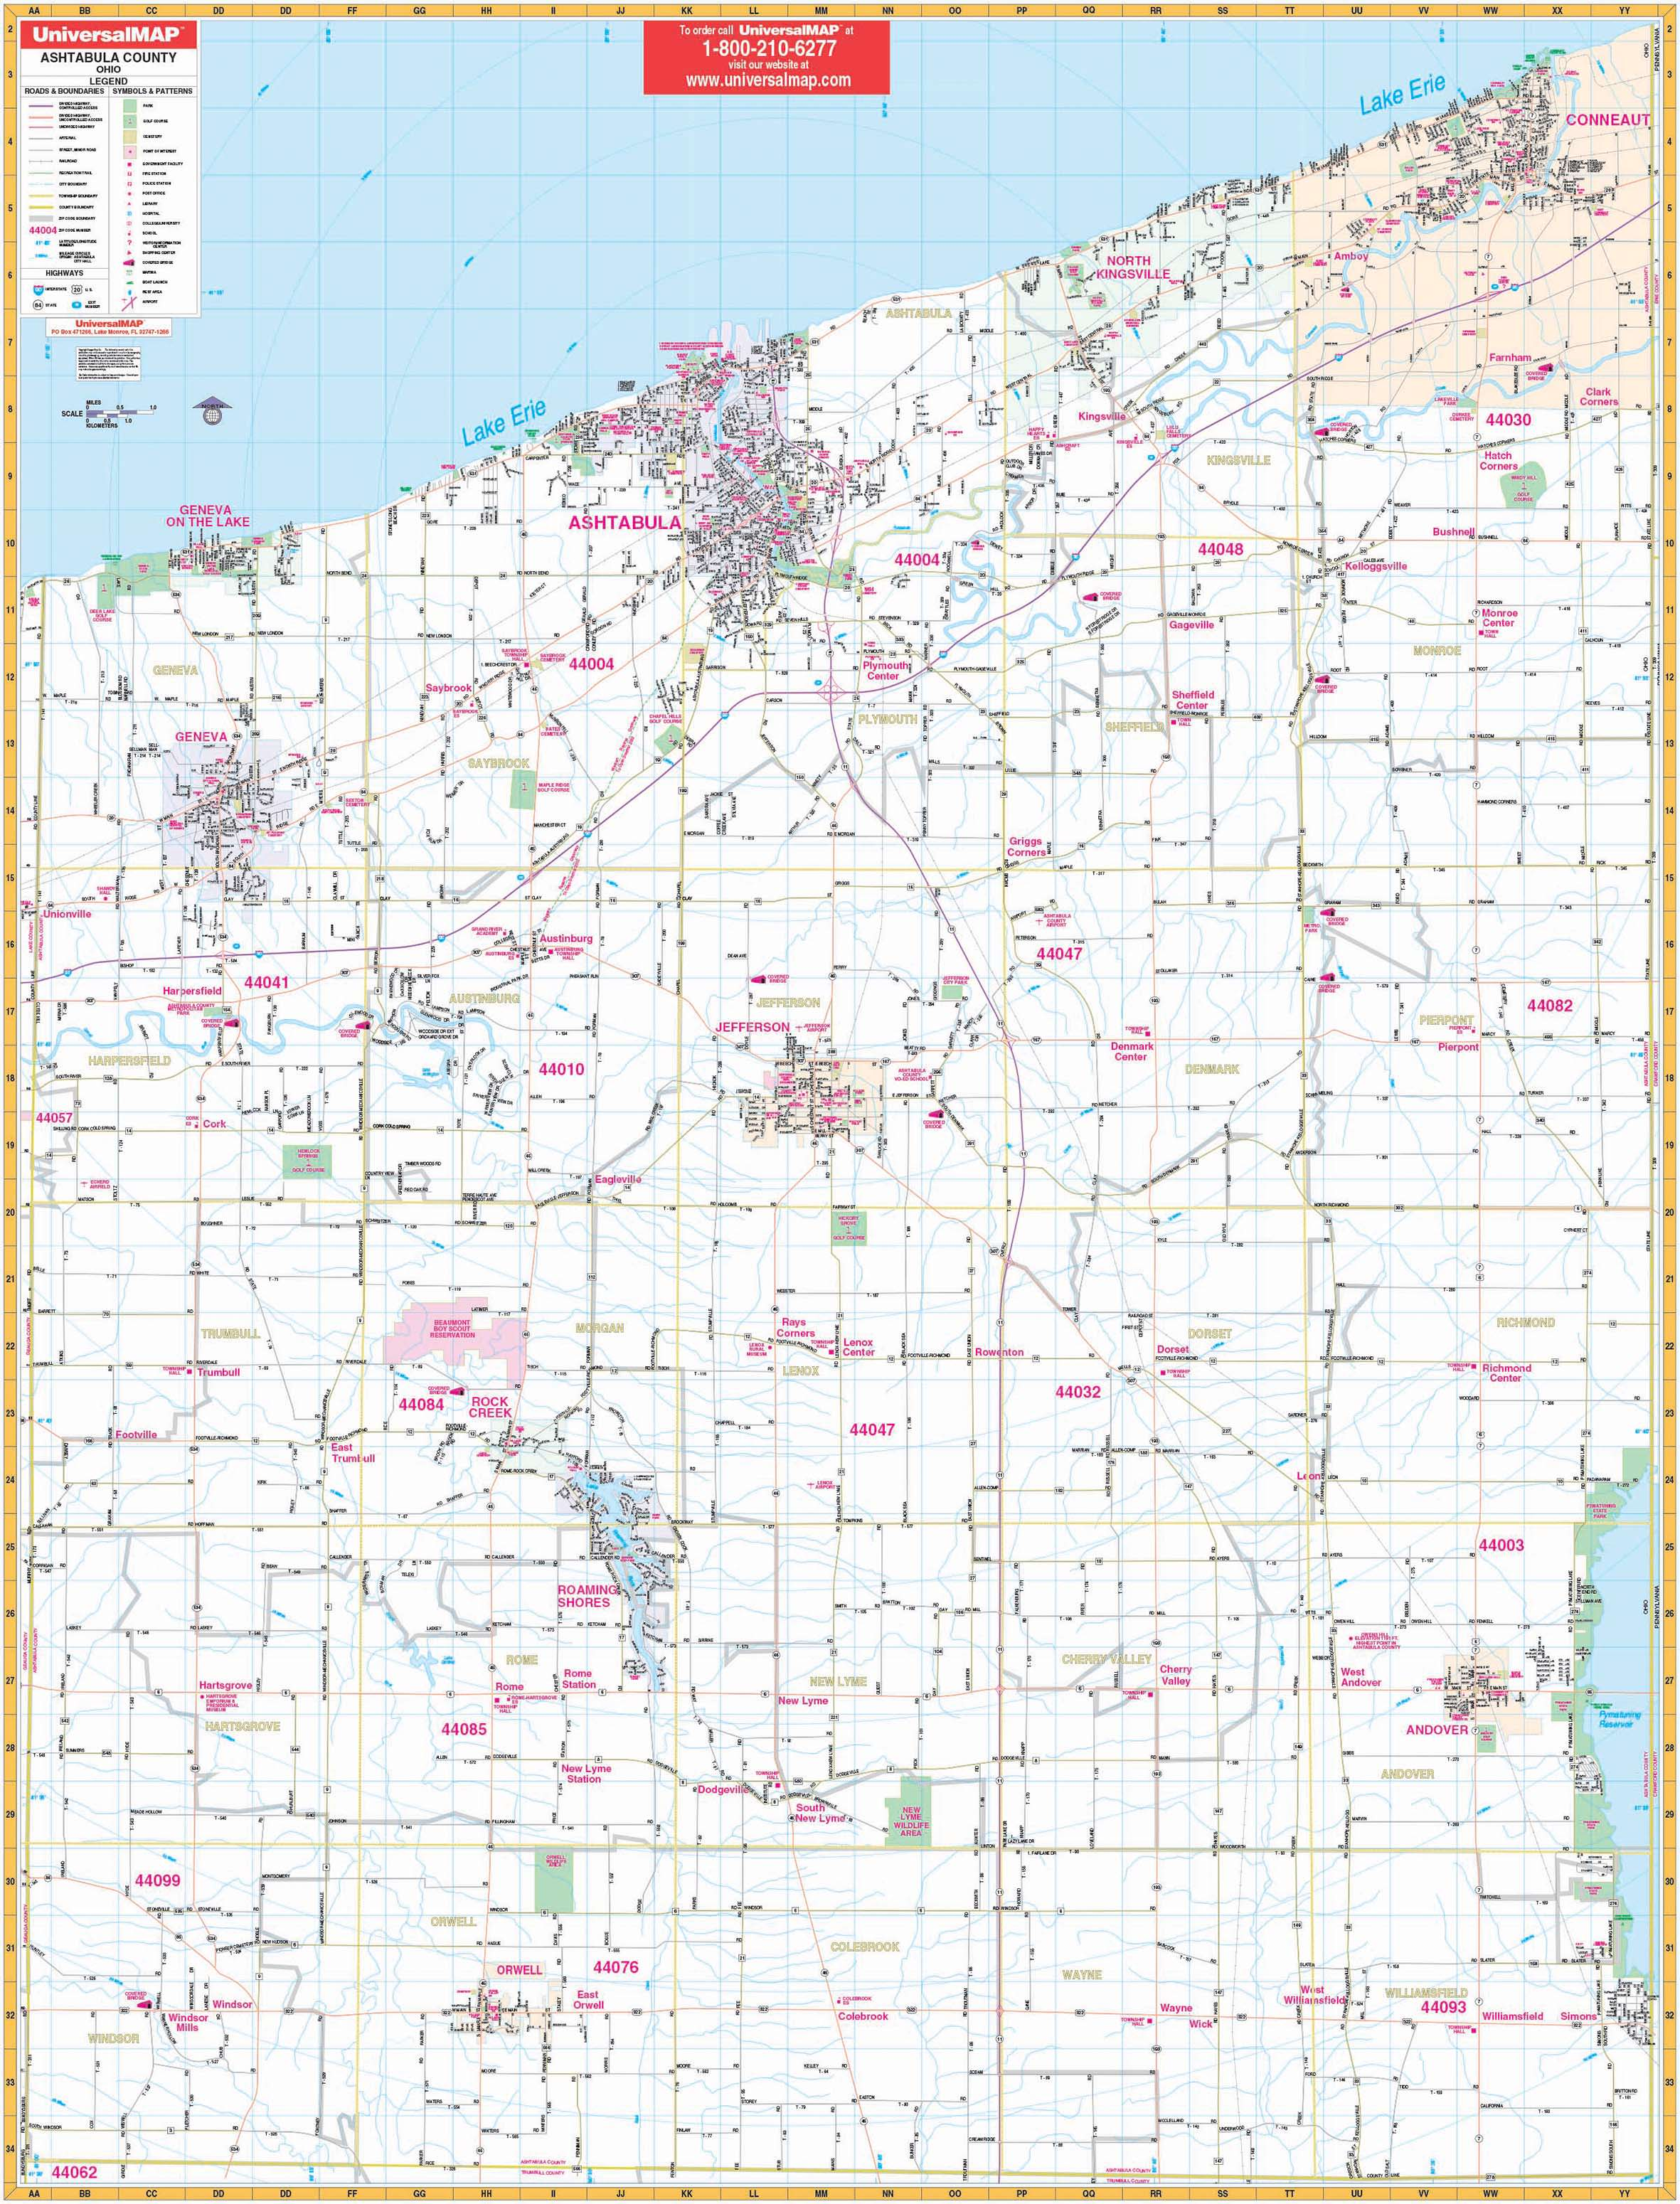 Ashtabula, OH Wall Map – KAPPA MAP GROUP on map of geauga county ohio, map of jackson county ohio, map of marion county ohio, map of mahoning county ohio, map of tuscarawas county ohio, map of brown county ohio, map of van wert county ohio, map of hamilton county ohio, map of washington county ohio, map of muskingum county ohio, map of lake county ohio, map of darke county ohio, map of hardin county ohio, map northeast cleveland ohio, map of lorain county ohio, map of coshocton county ohio, map of fairfield county ohio, map of huron county ohio, map of henry county ohio, map of auglaize county ohio,